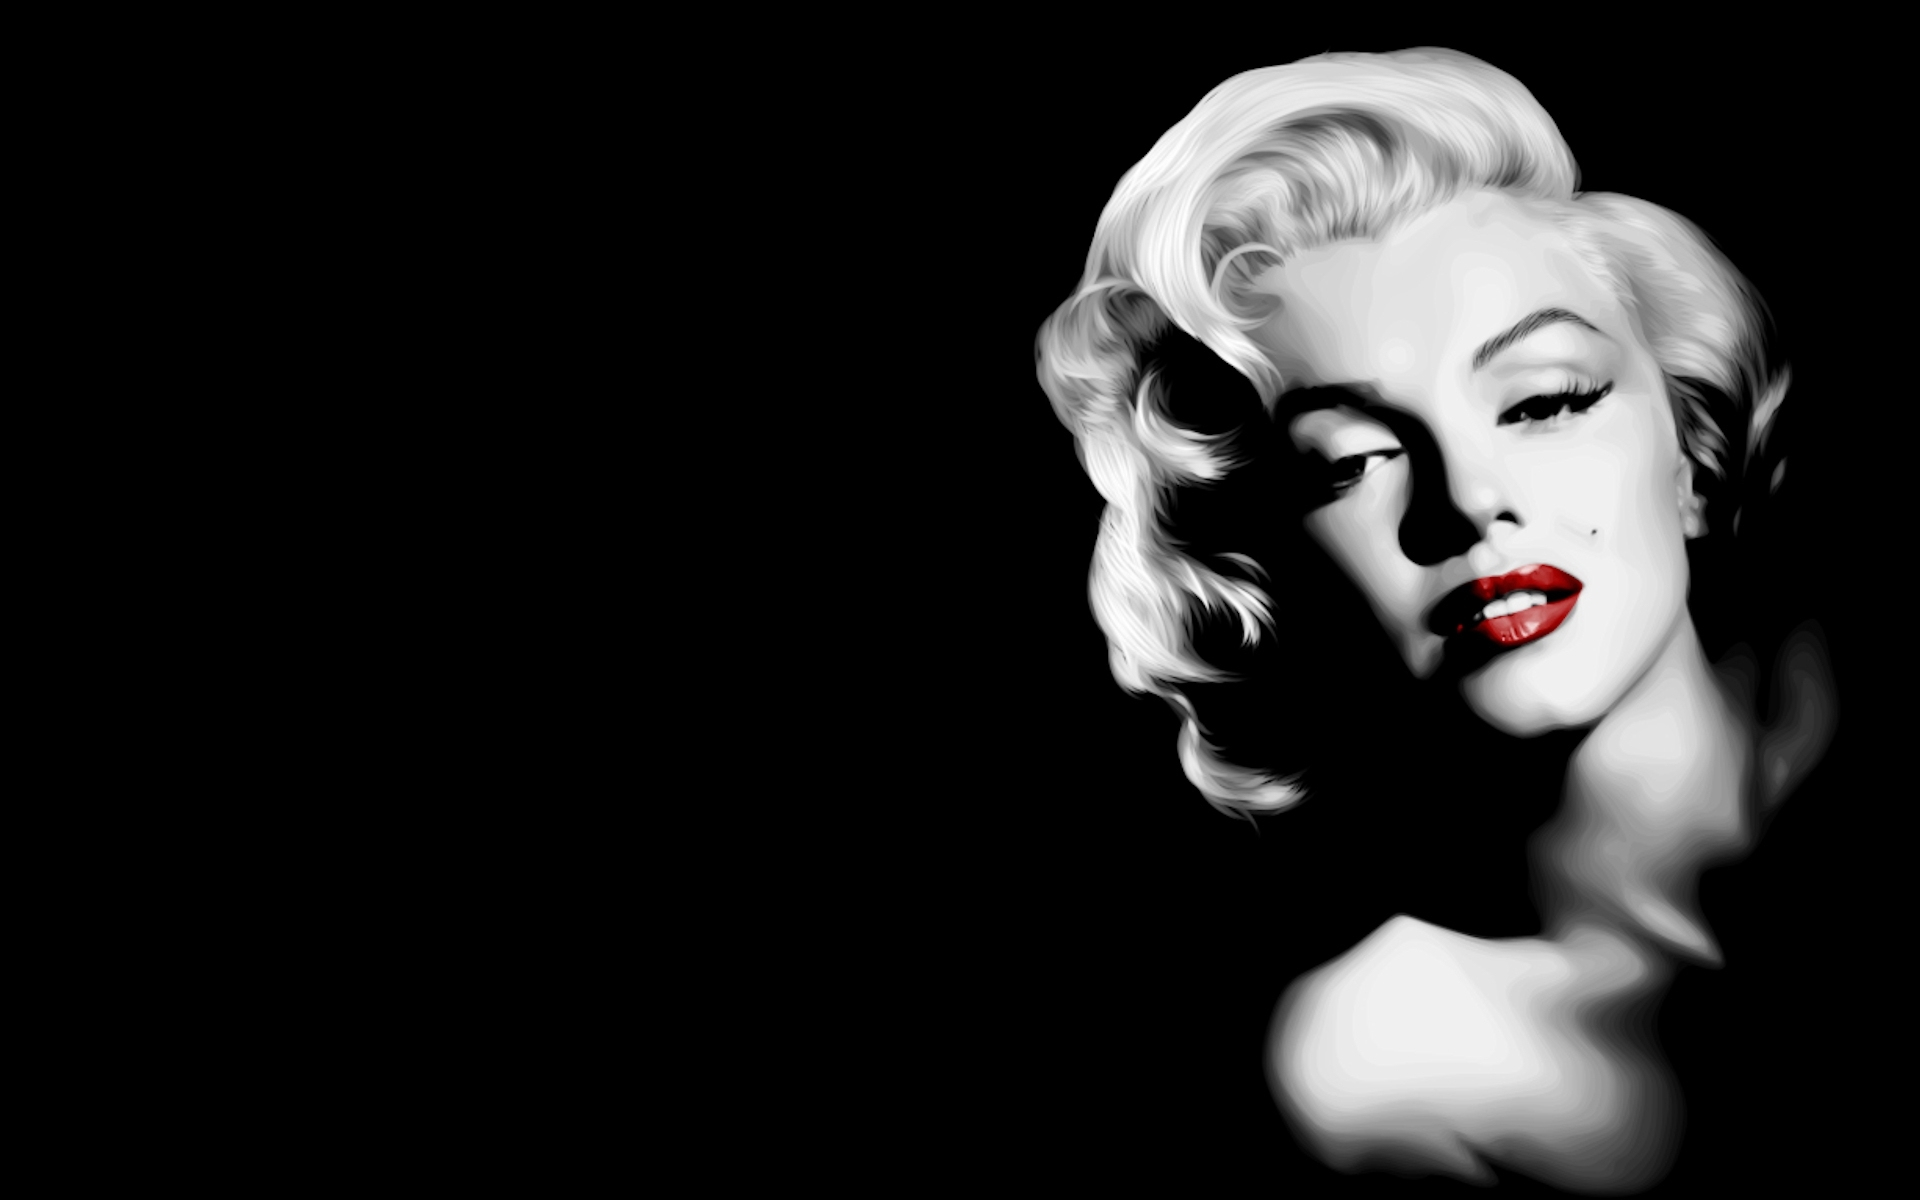 marilyn monroe wallpaper - wallpaper, high definition, high quality